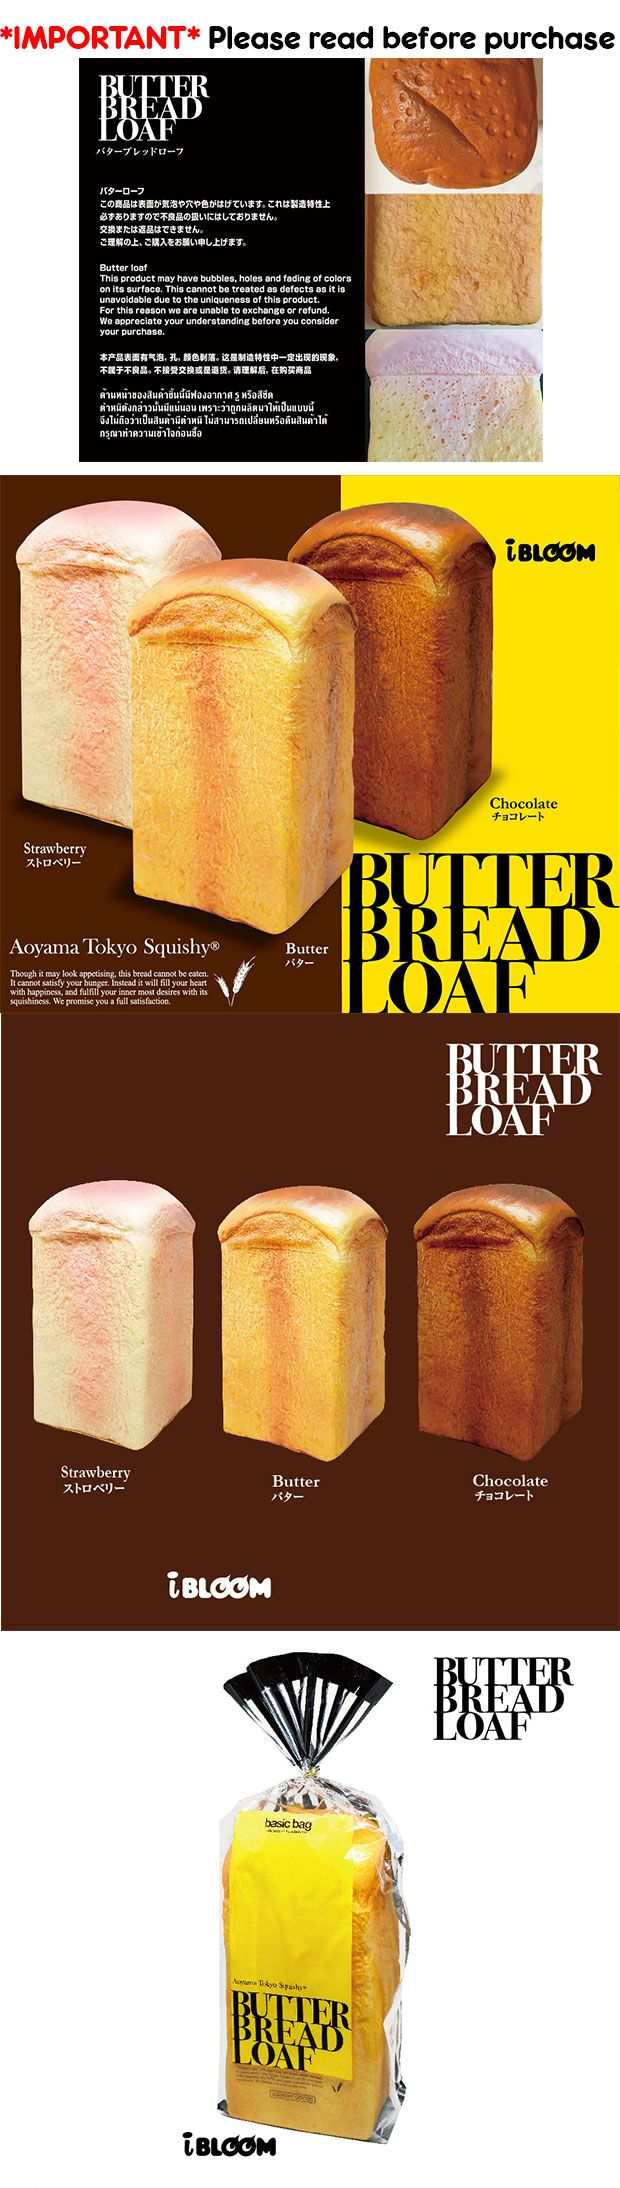 Aoyama Tokyo Butter Bread Loaf Squishy